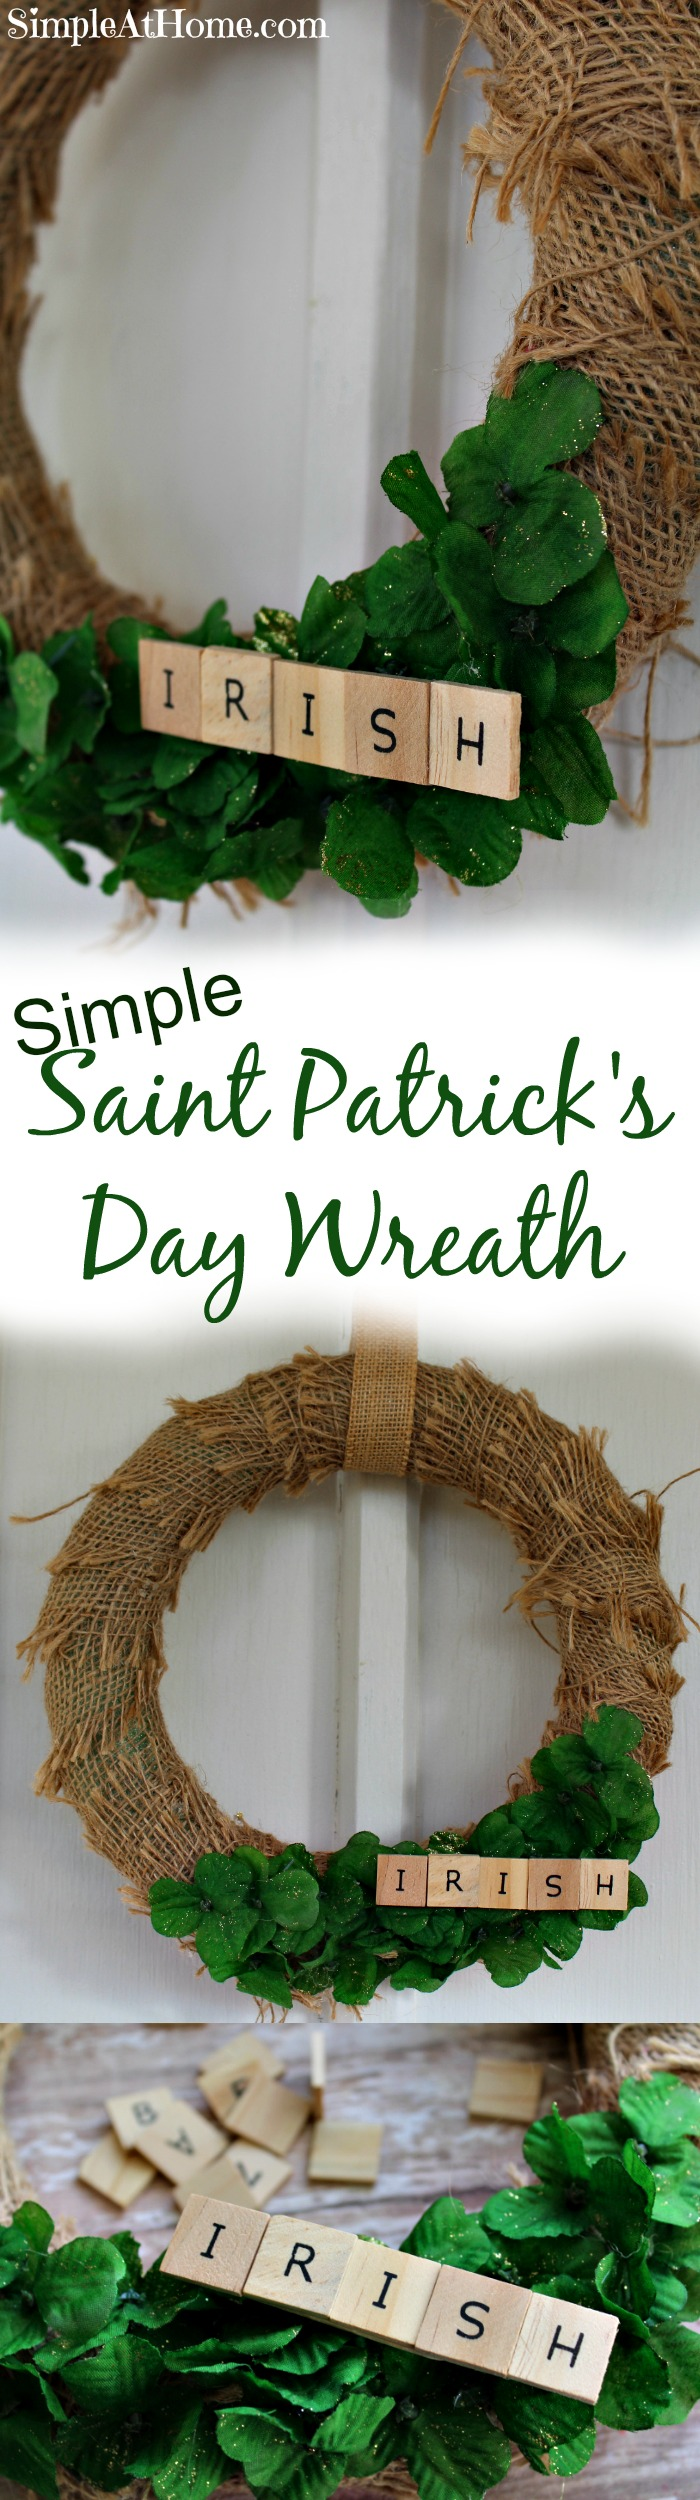 This simple Saint Patrick's Day wreath is cute and easy to make